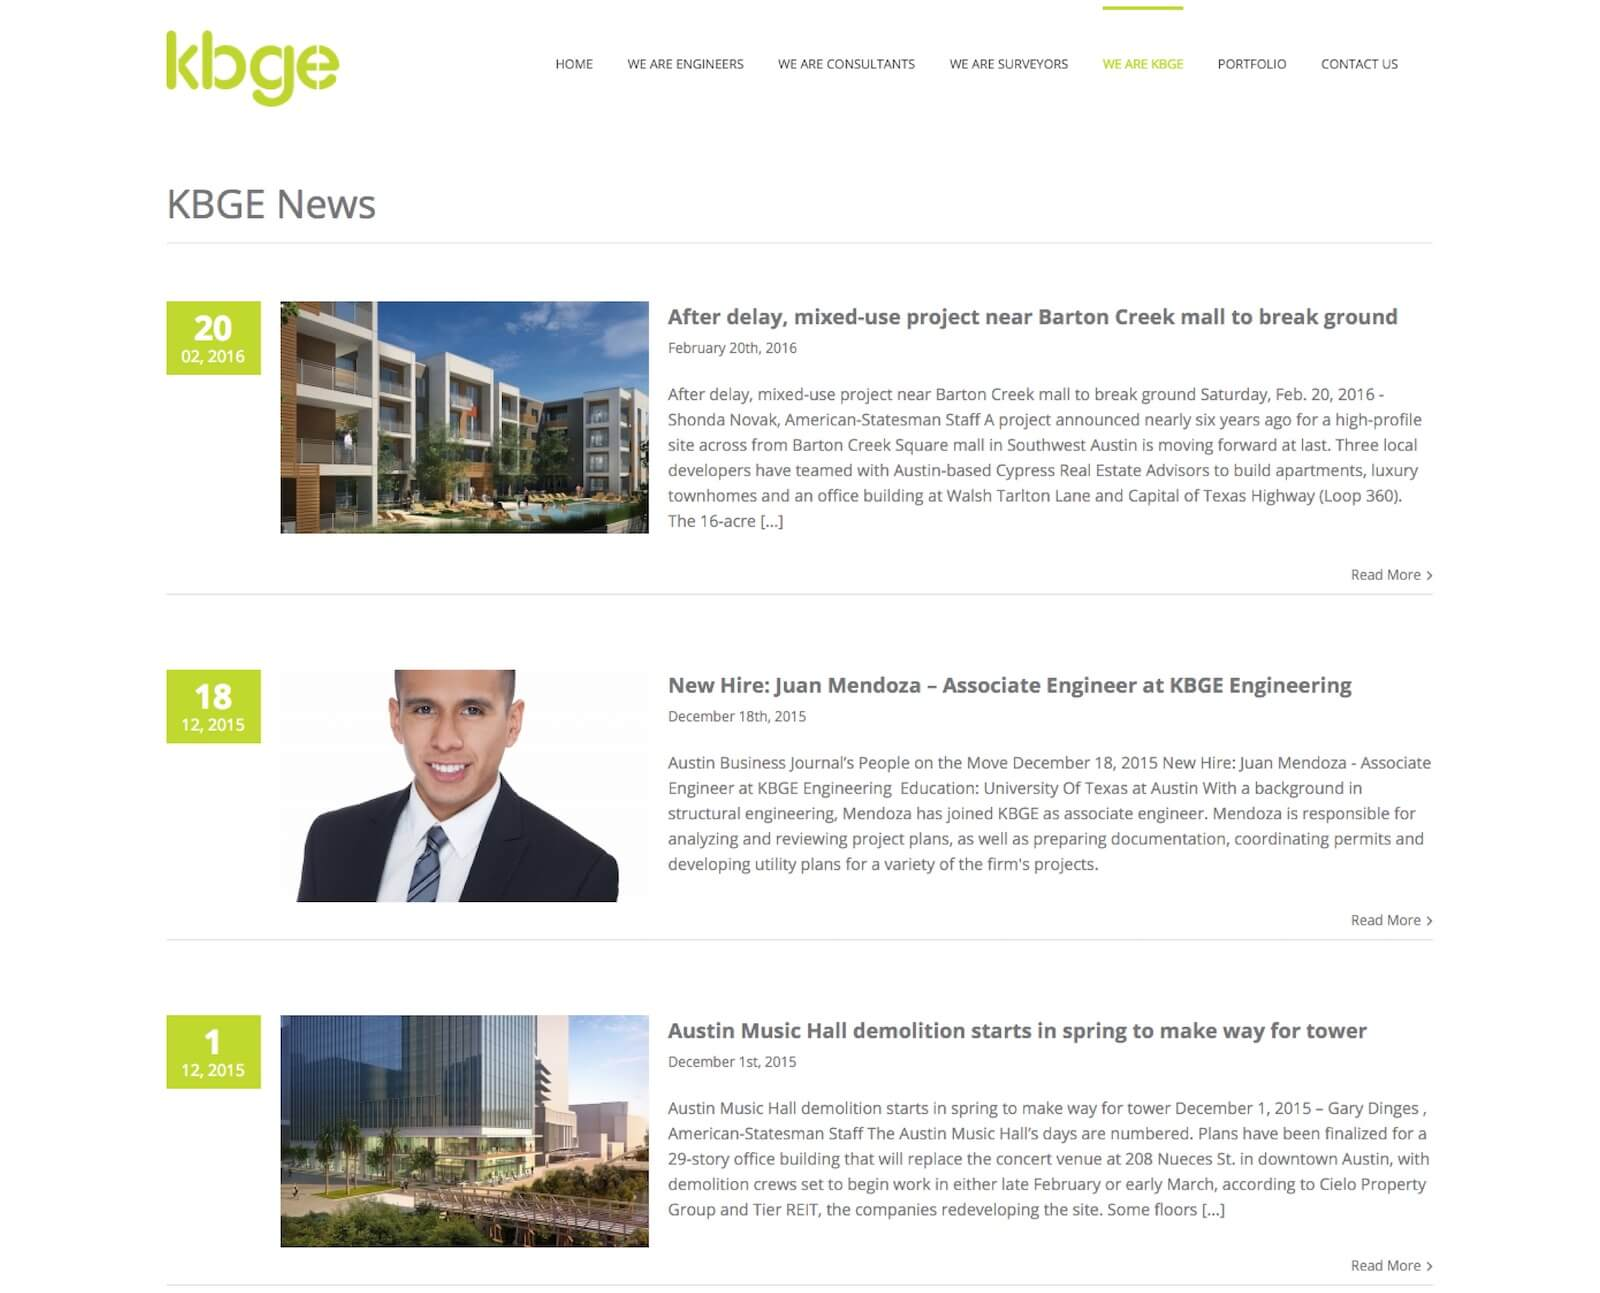 KBGE Engineering blog page website design